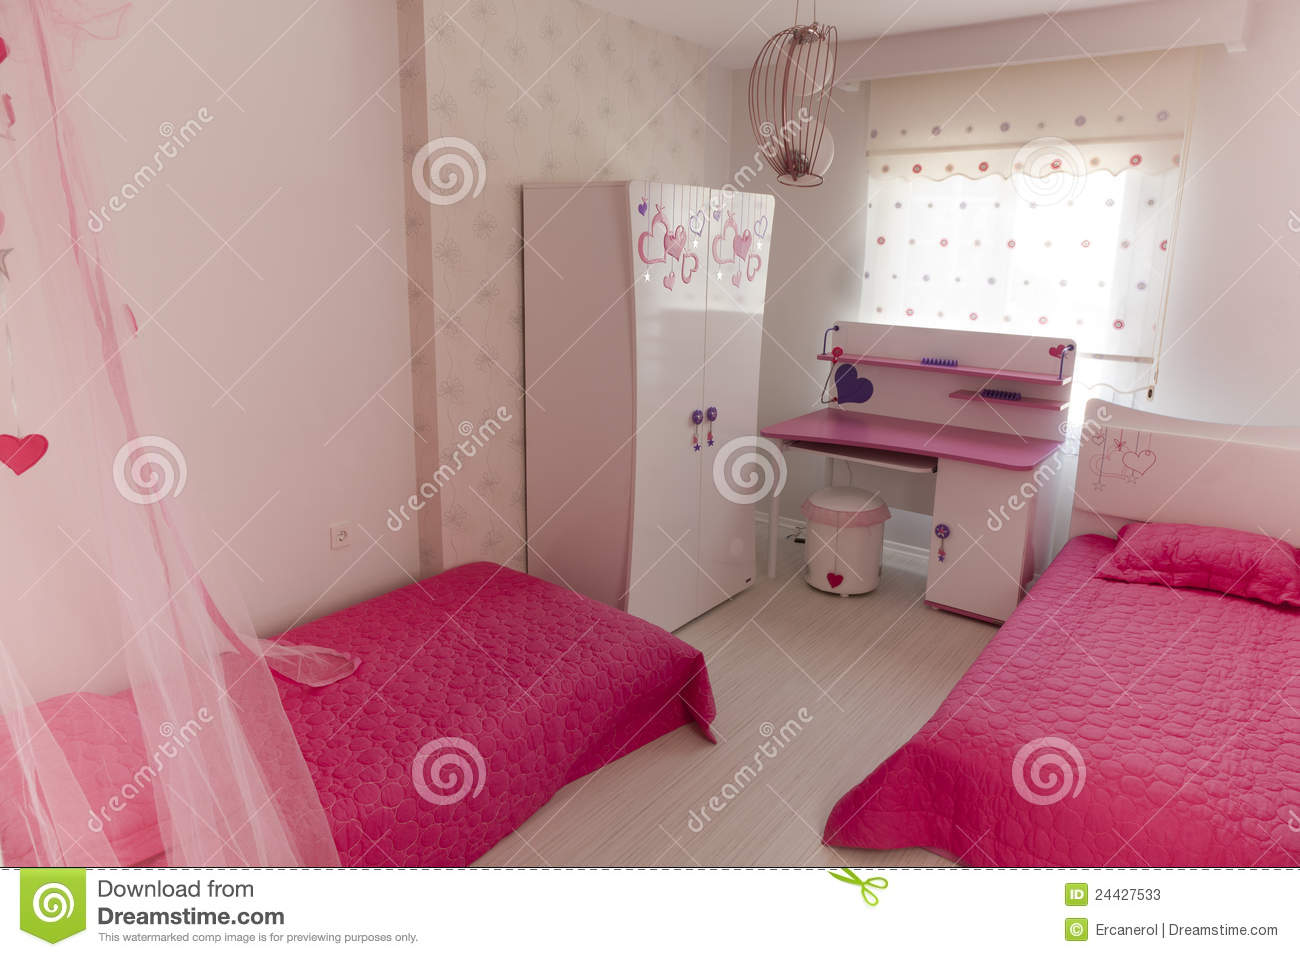 roze slaapkamer bedden en bureau stock afbeelding afbeelding 24427533. Black Bedroom Furniture Sets. Home Design Ideas